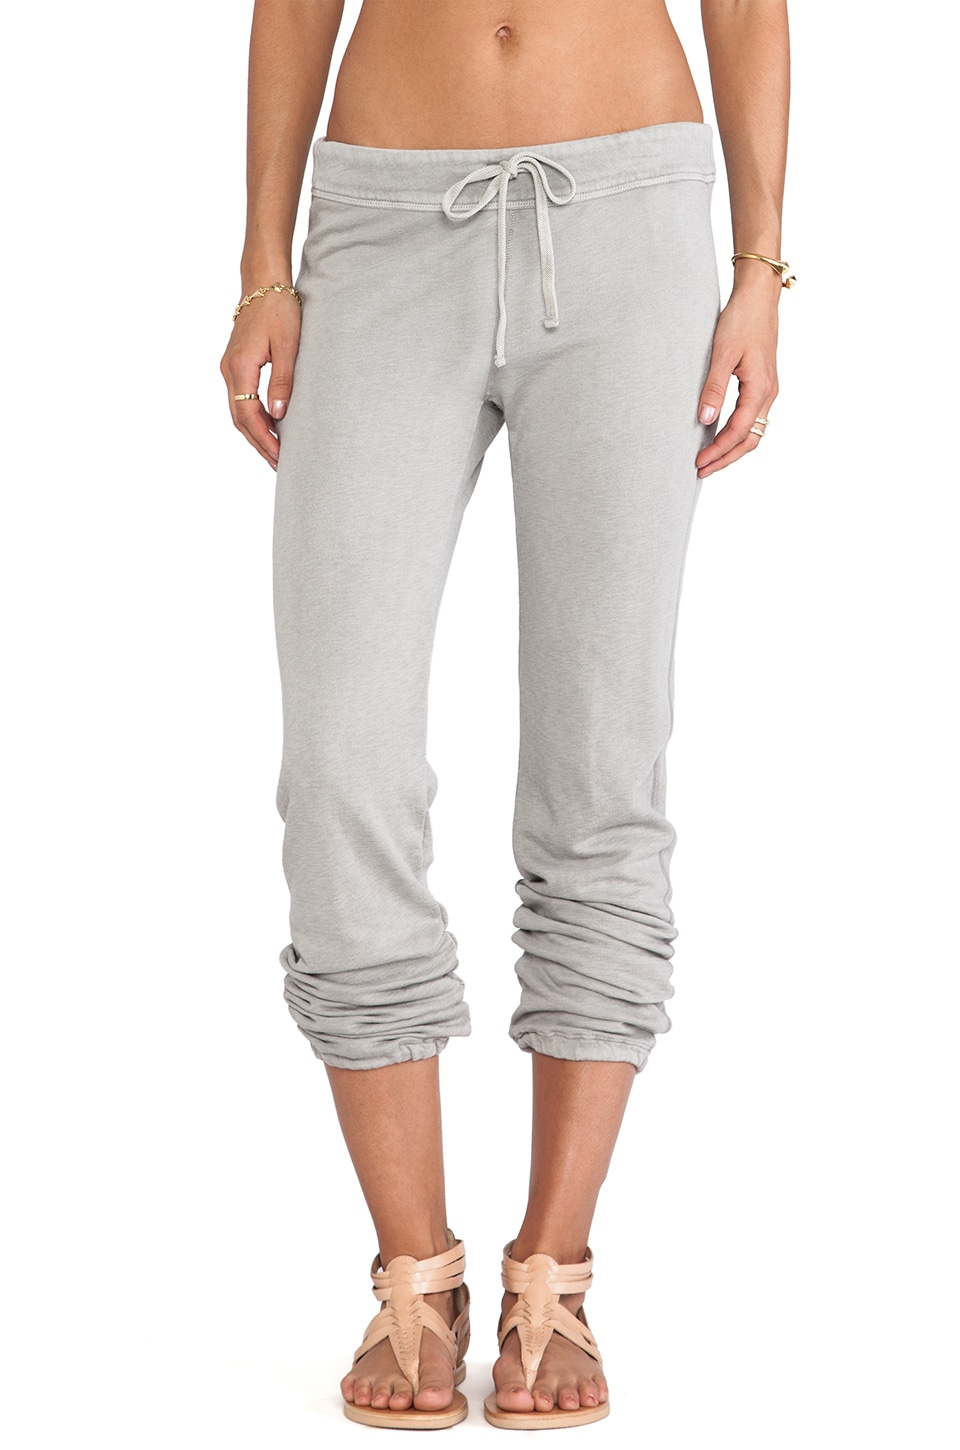 James Perse Genie Sweat Pant in Shadow